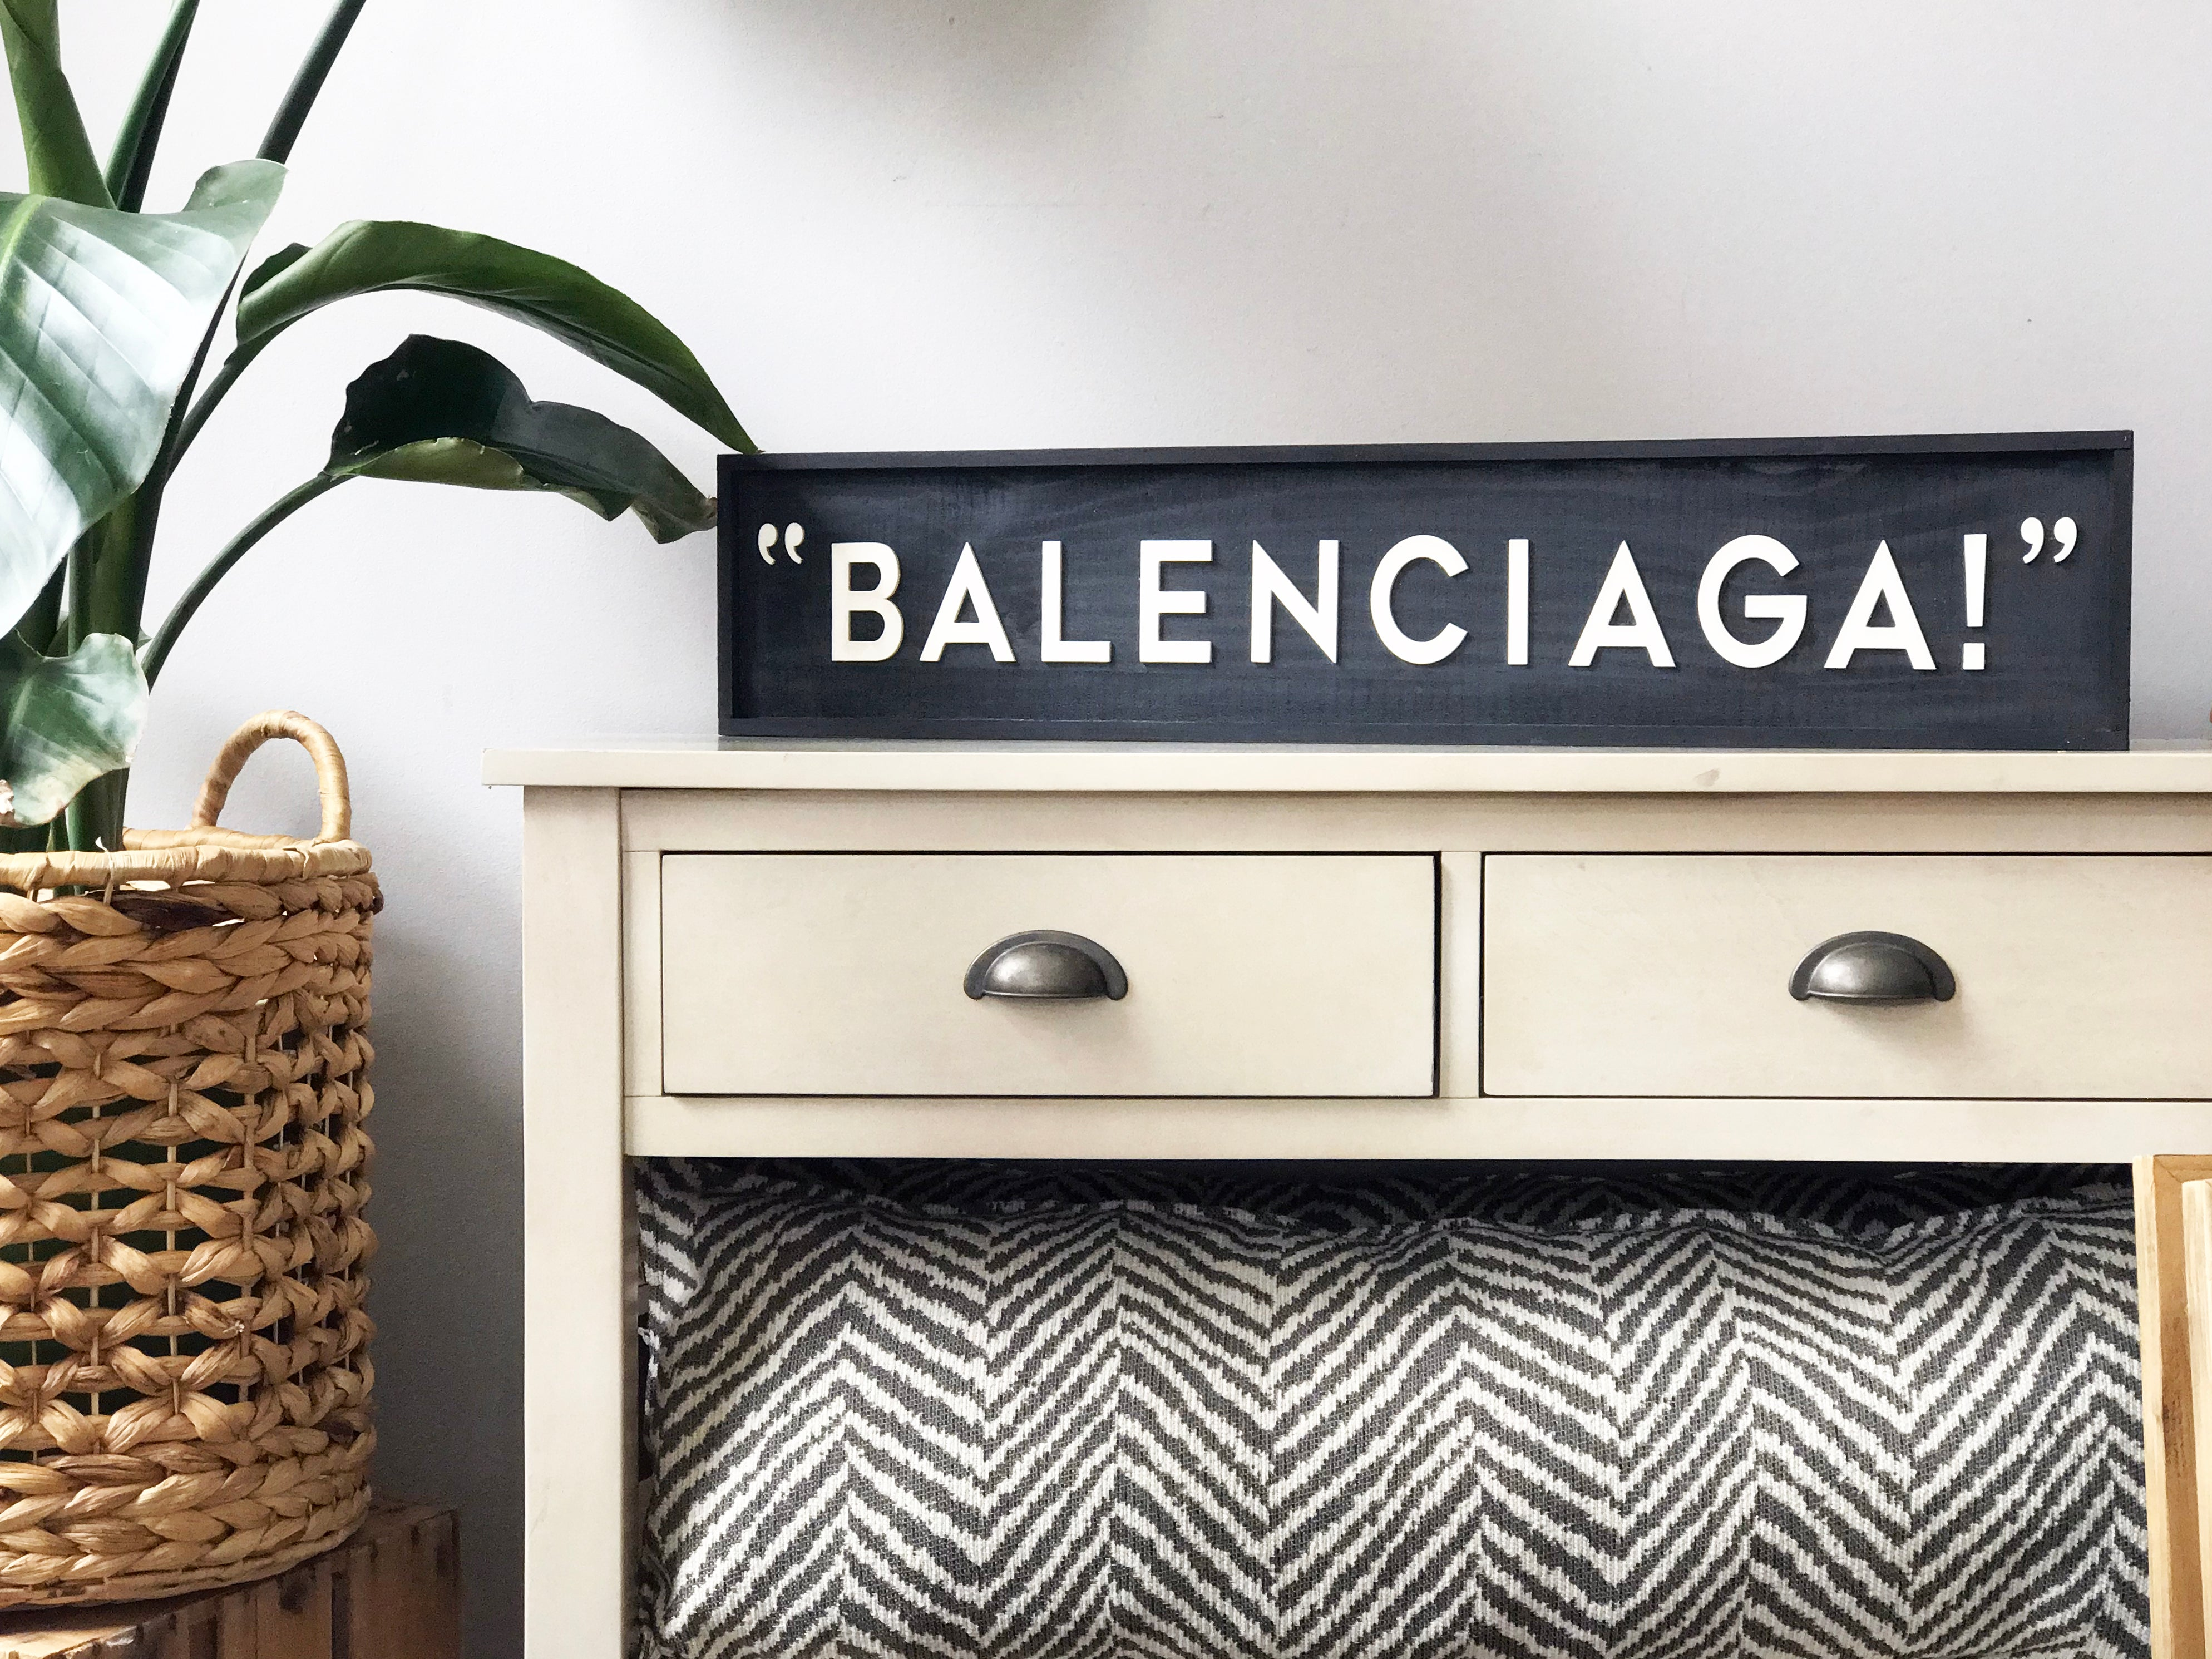 Balenciaga! -  Wall Art